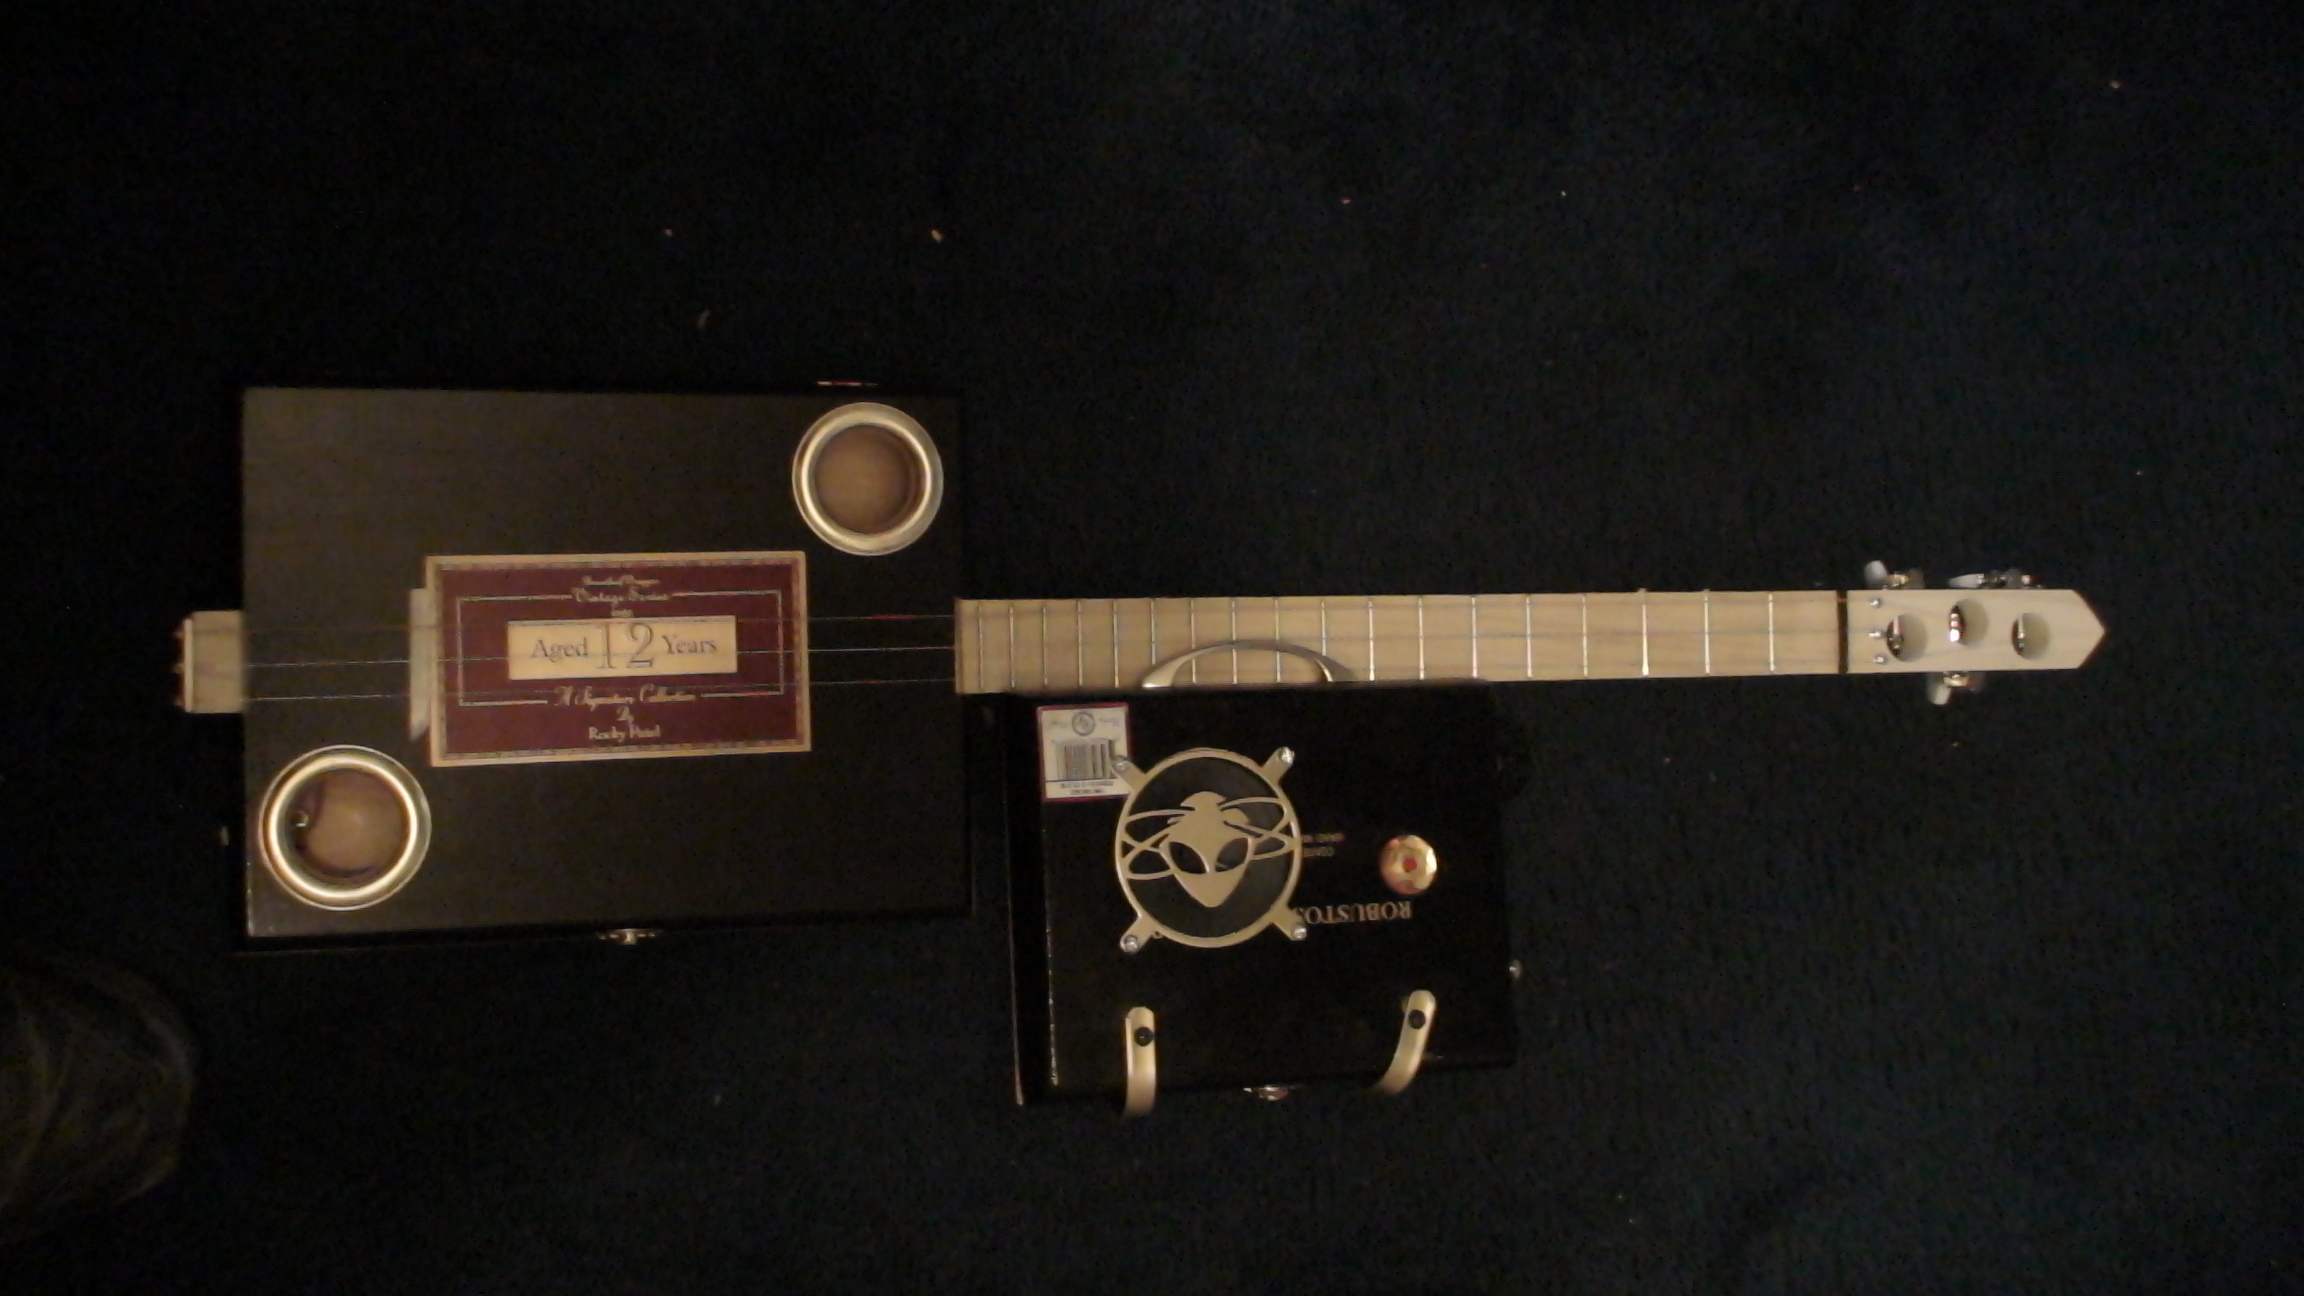 Cigar Box Guitar by Cipriano Vigil - Aged 12 Years